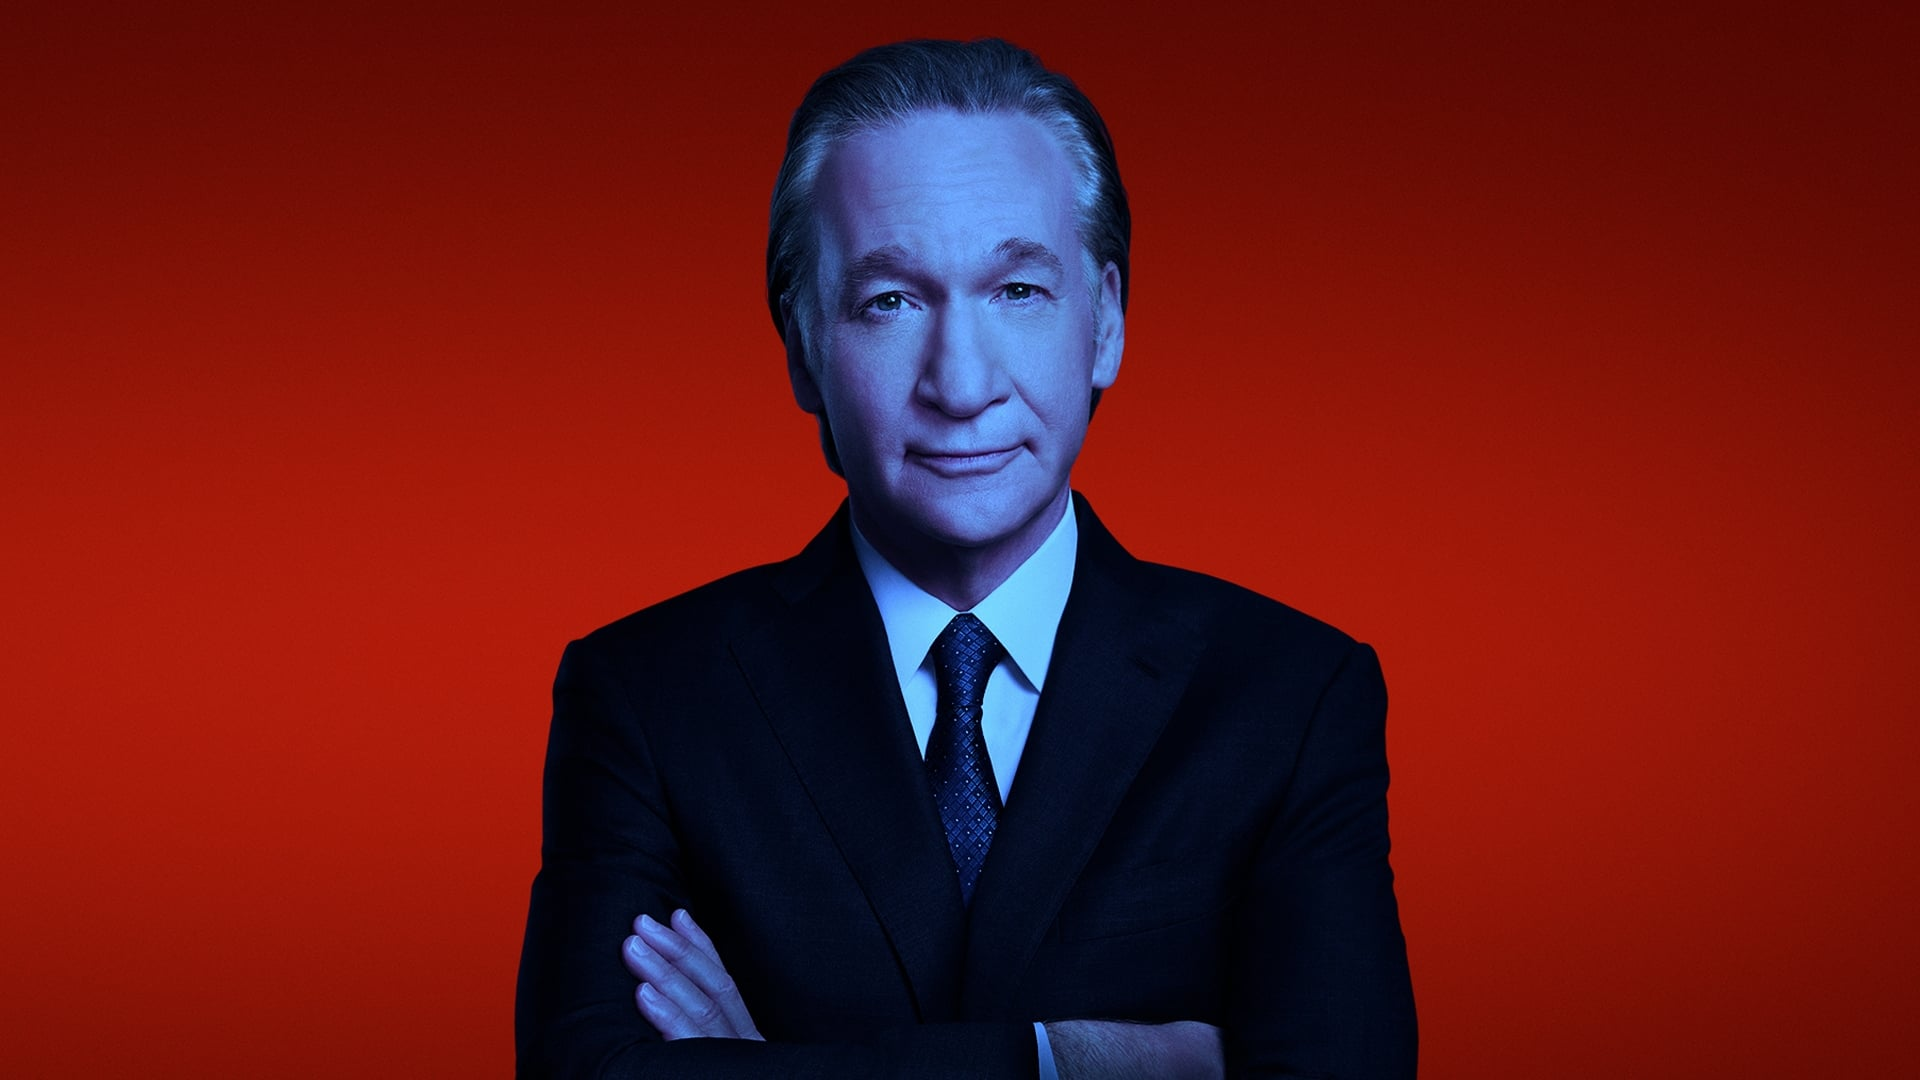 Real Time with Bill Maher - Season 10